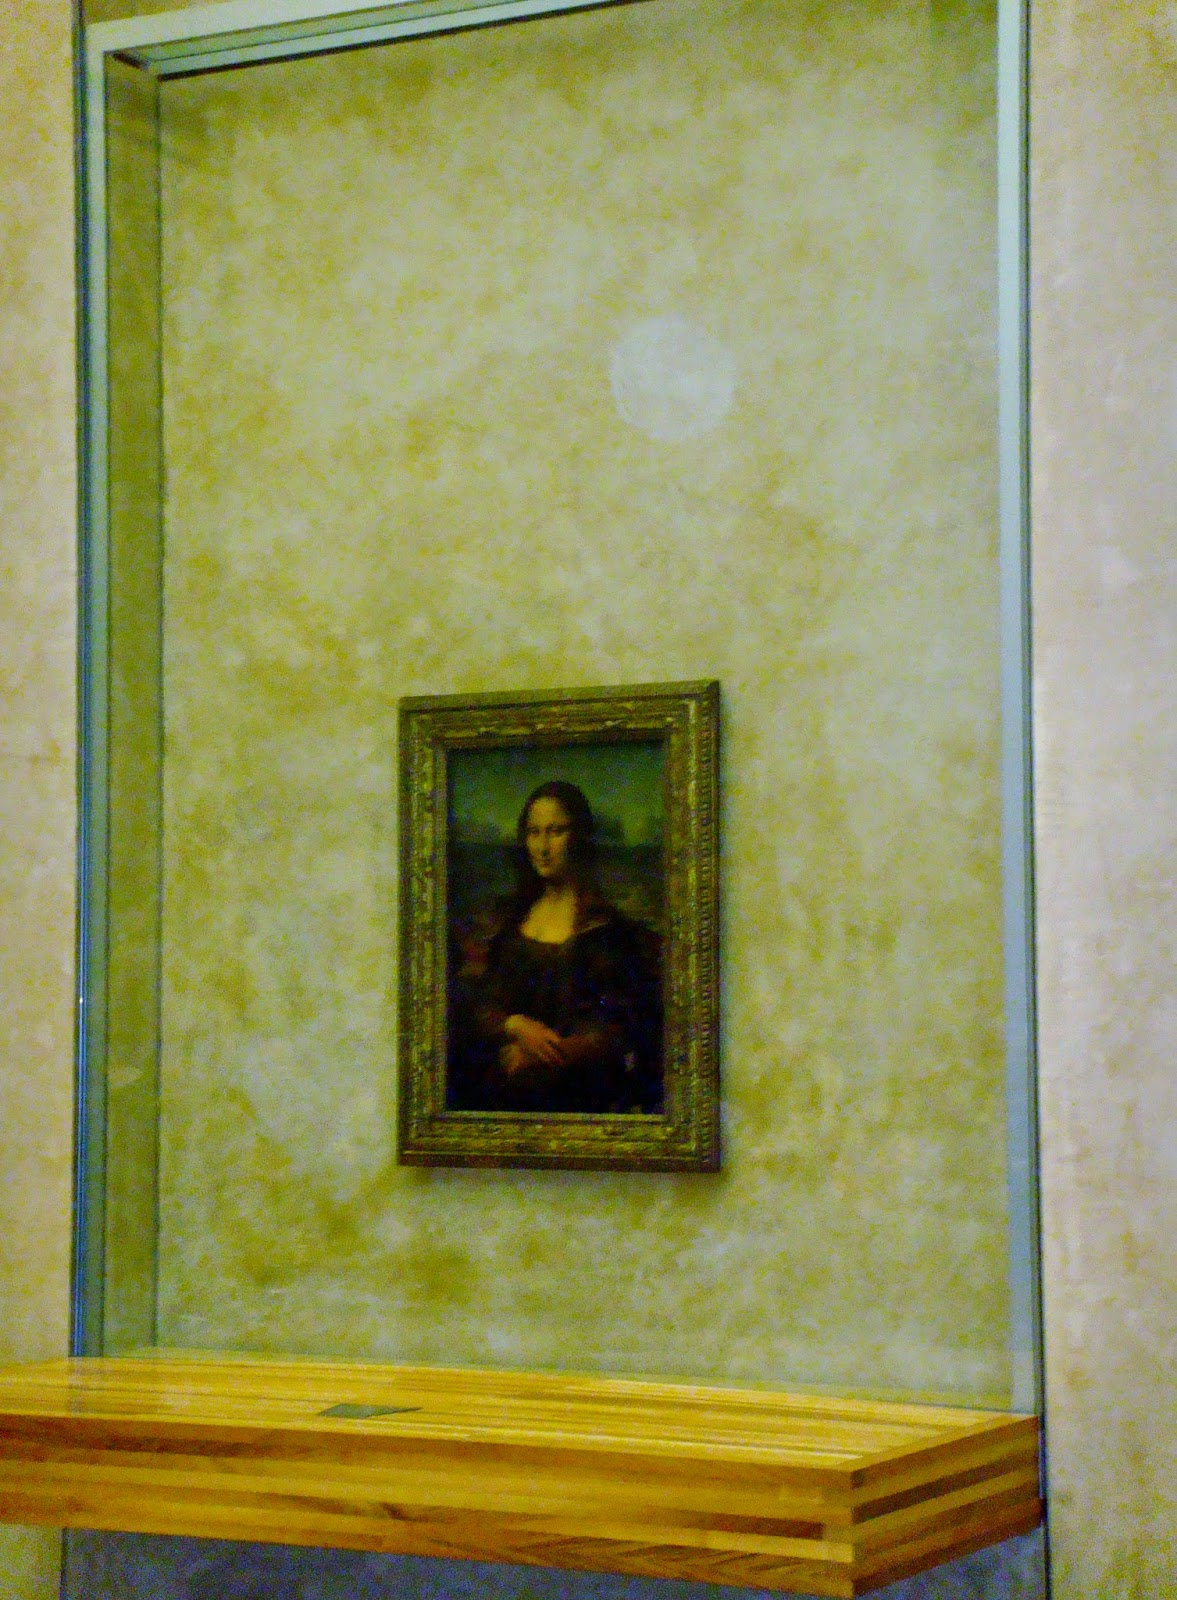 The Mona Lisa Louvre Paris